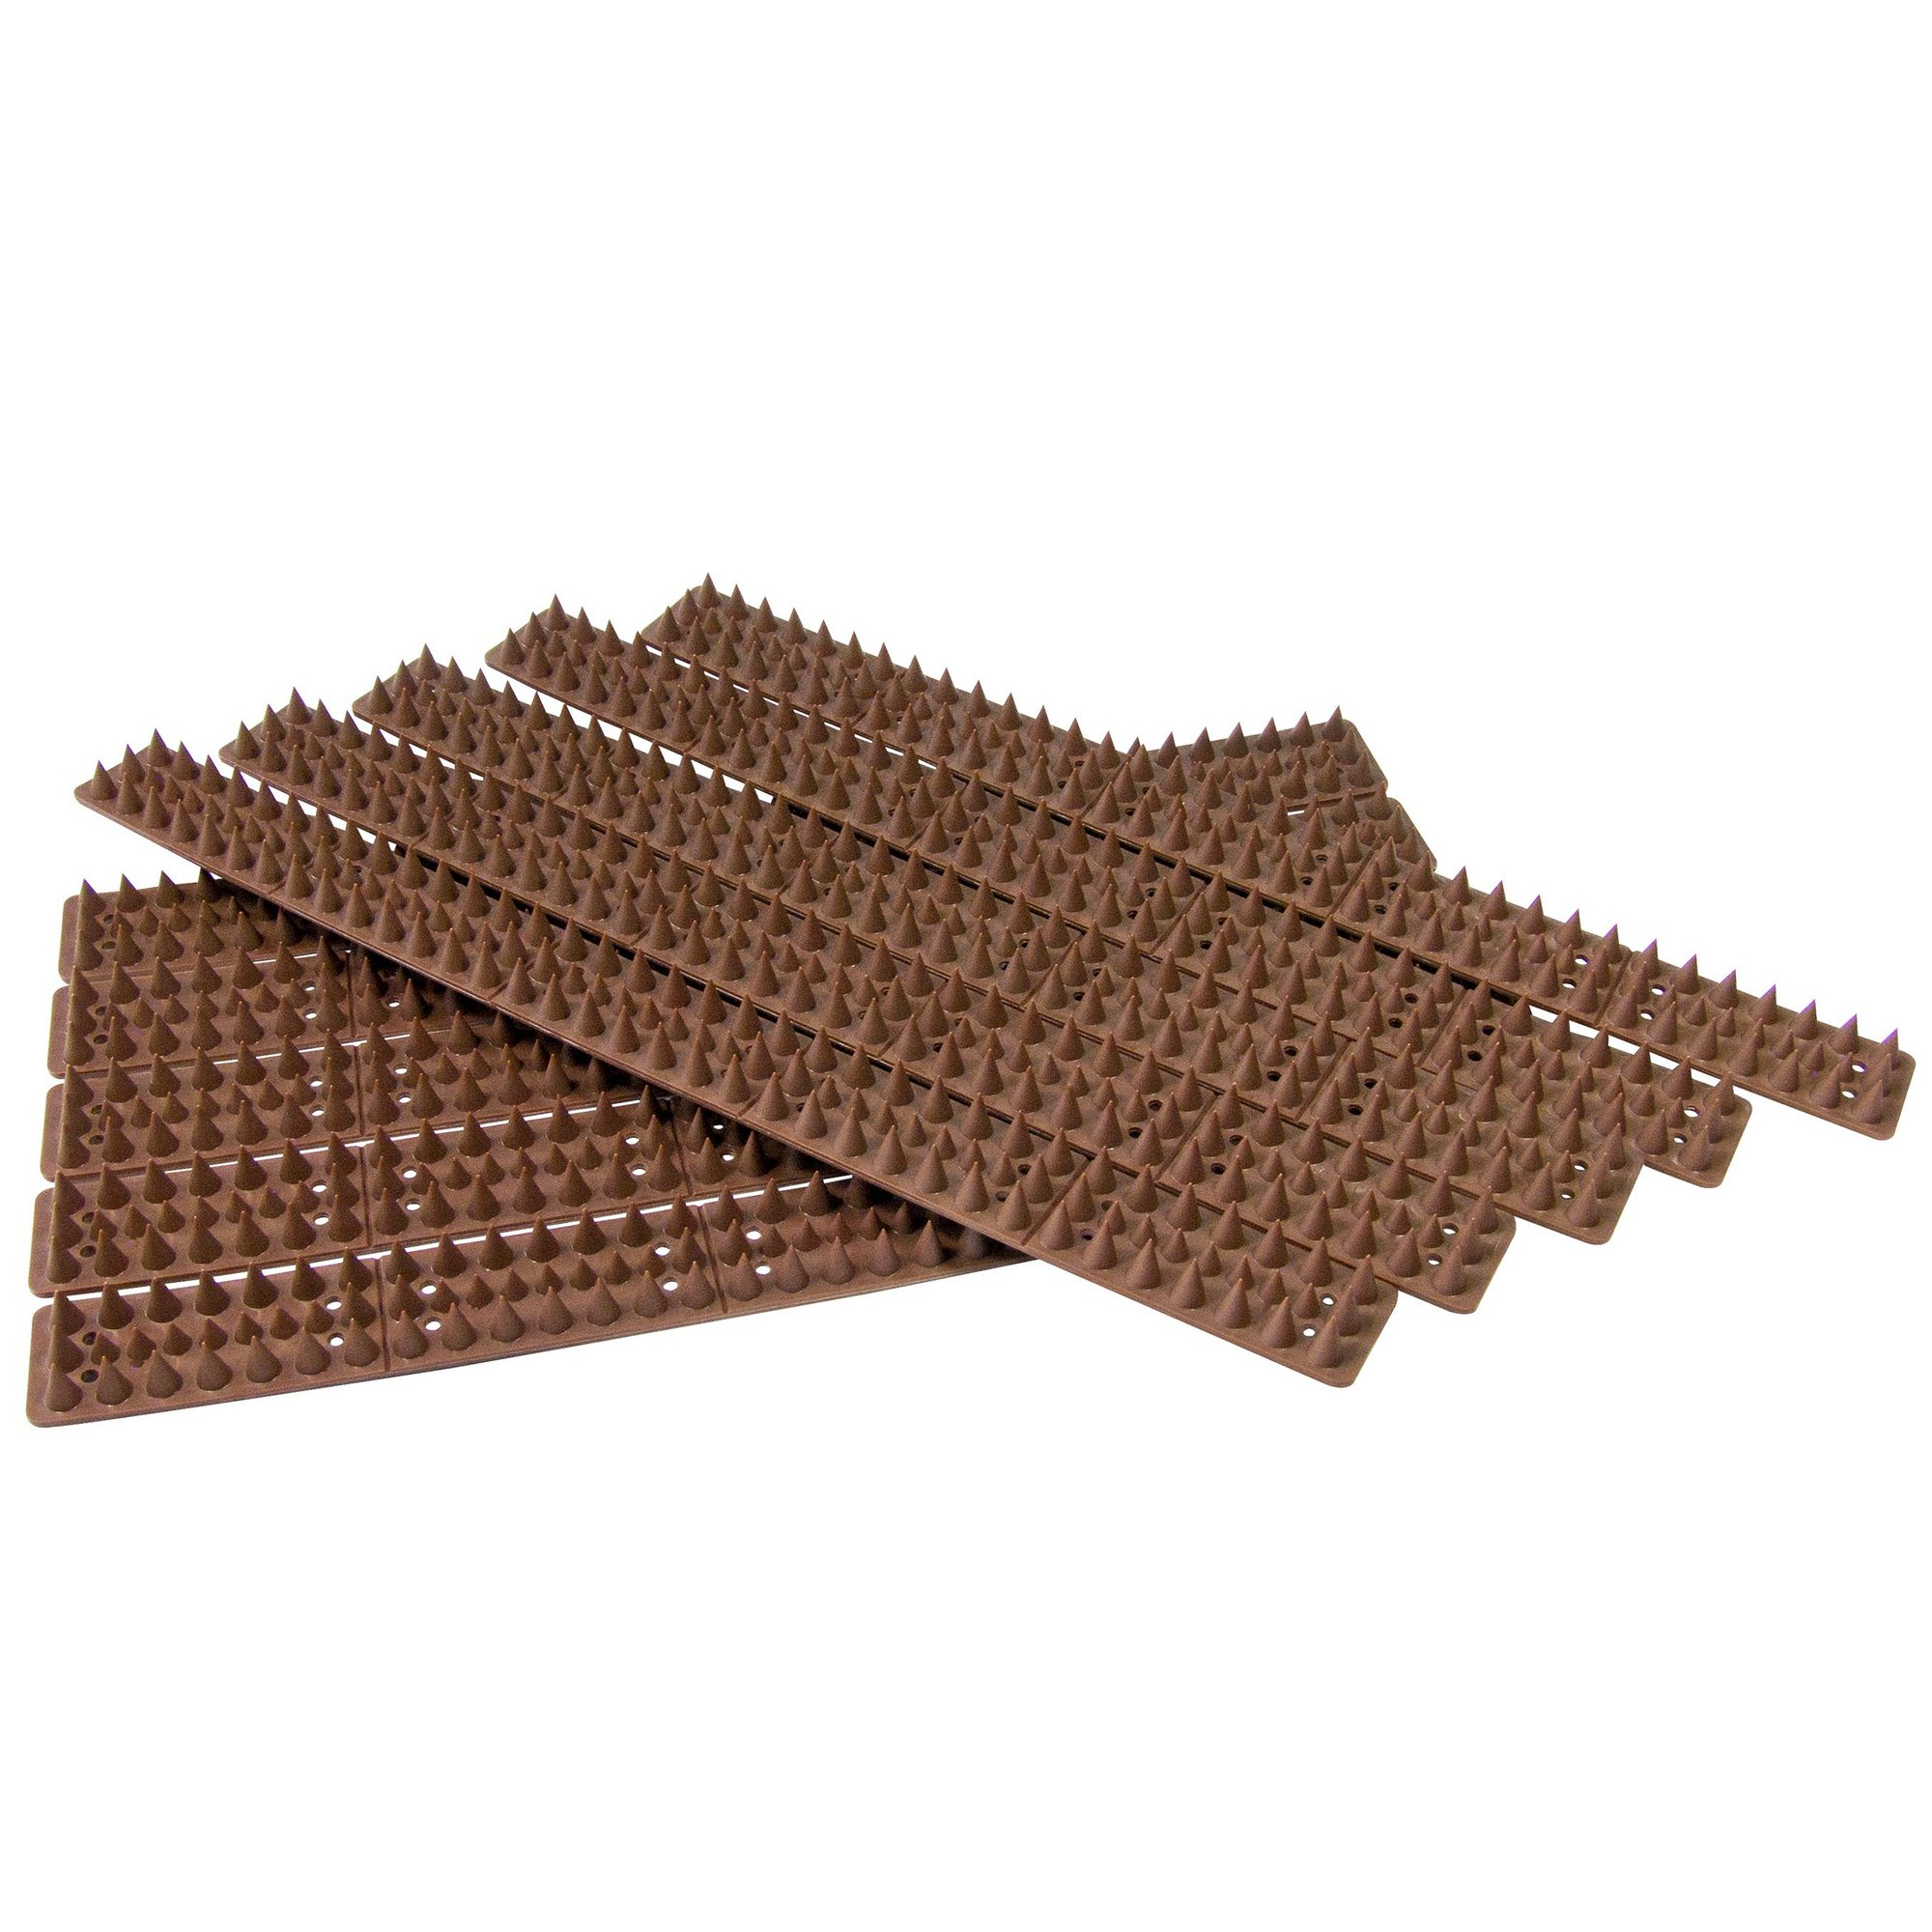 Image of 10 Piece Security Spikes